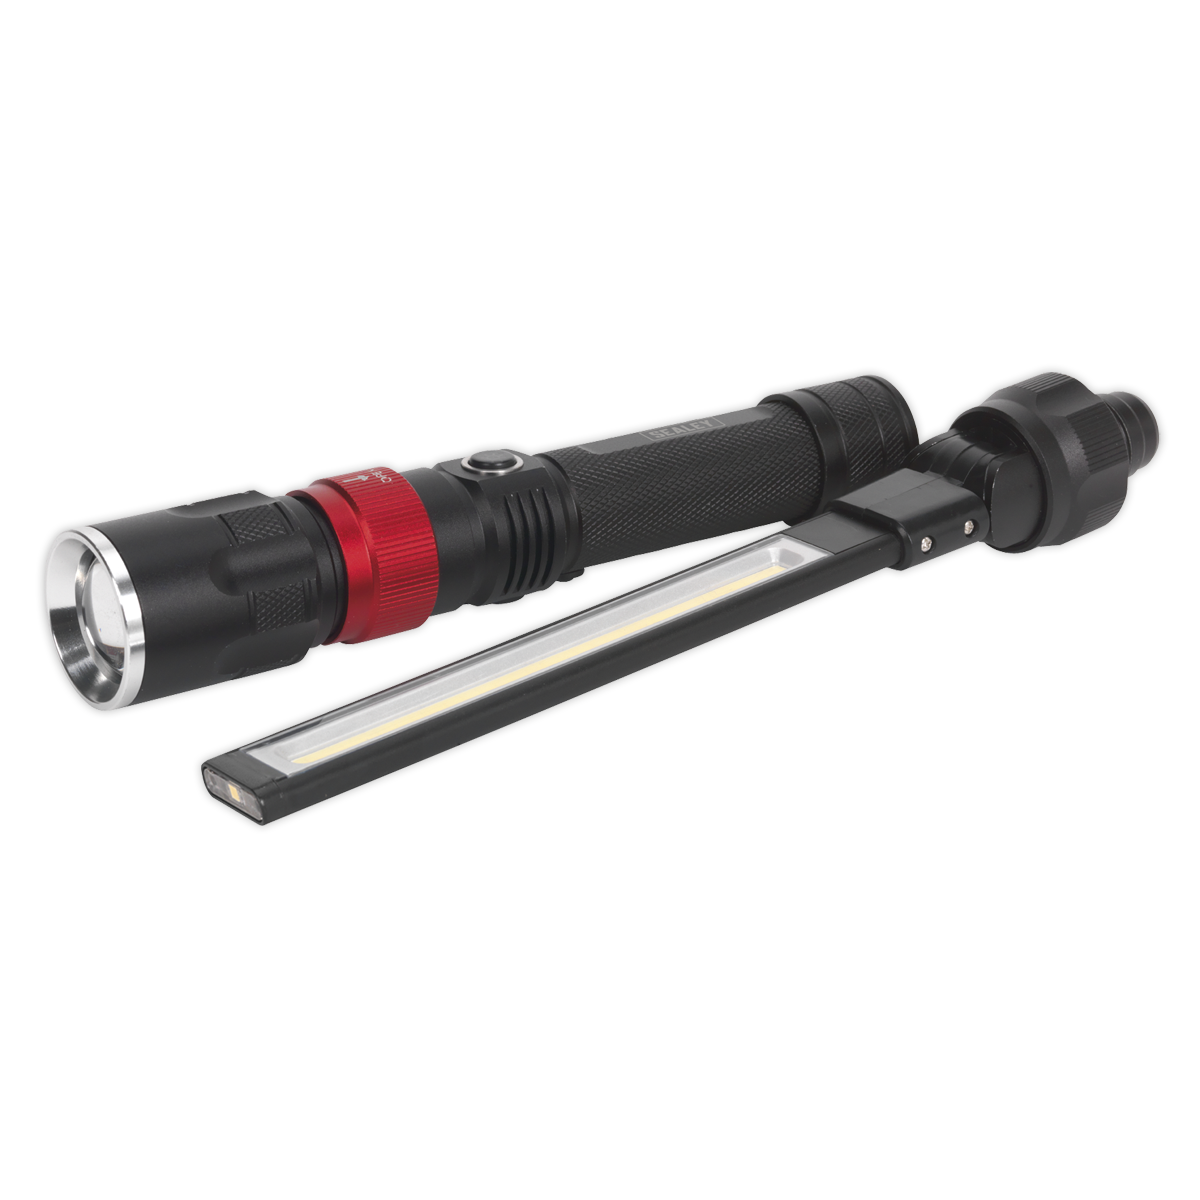 Interchangeable COB LED Inspection Lamp & Torch 3 x AAA